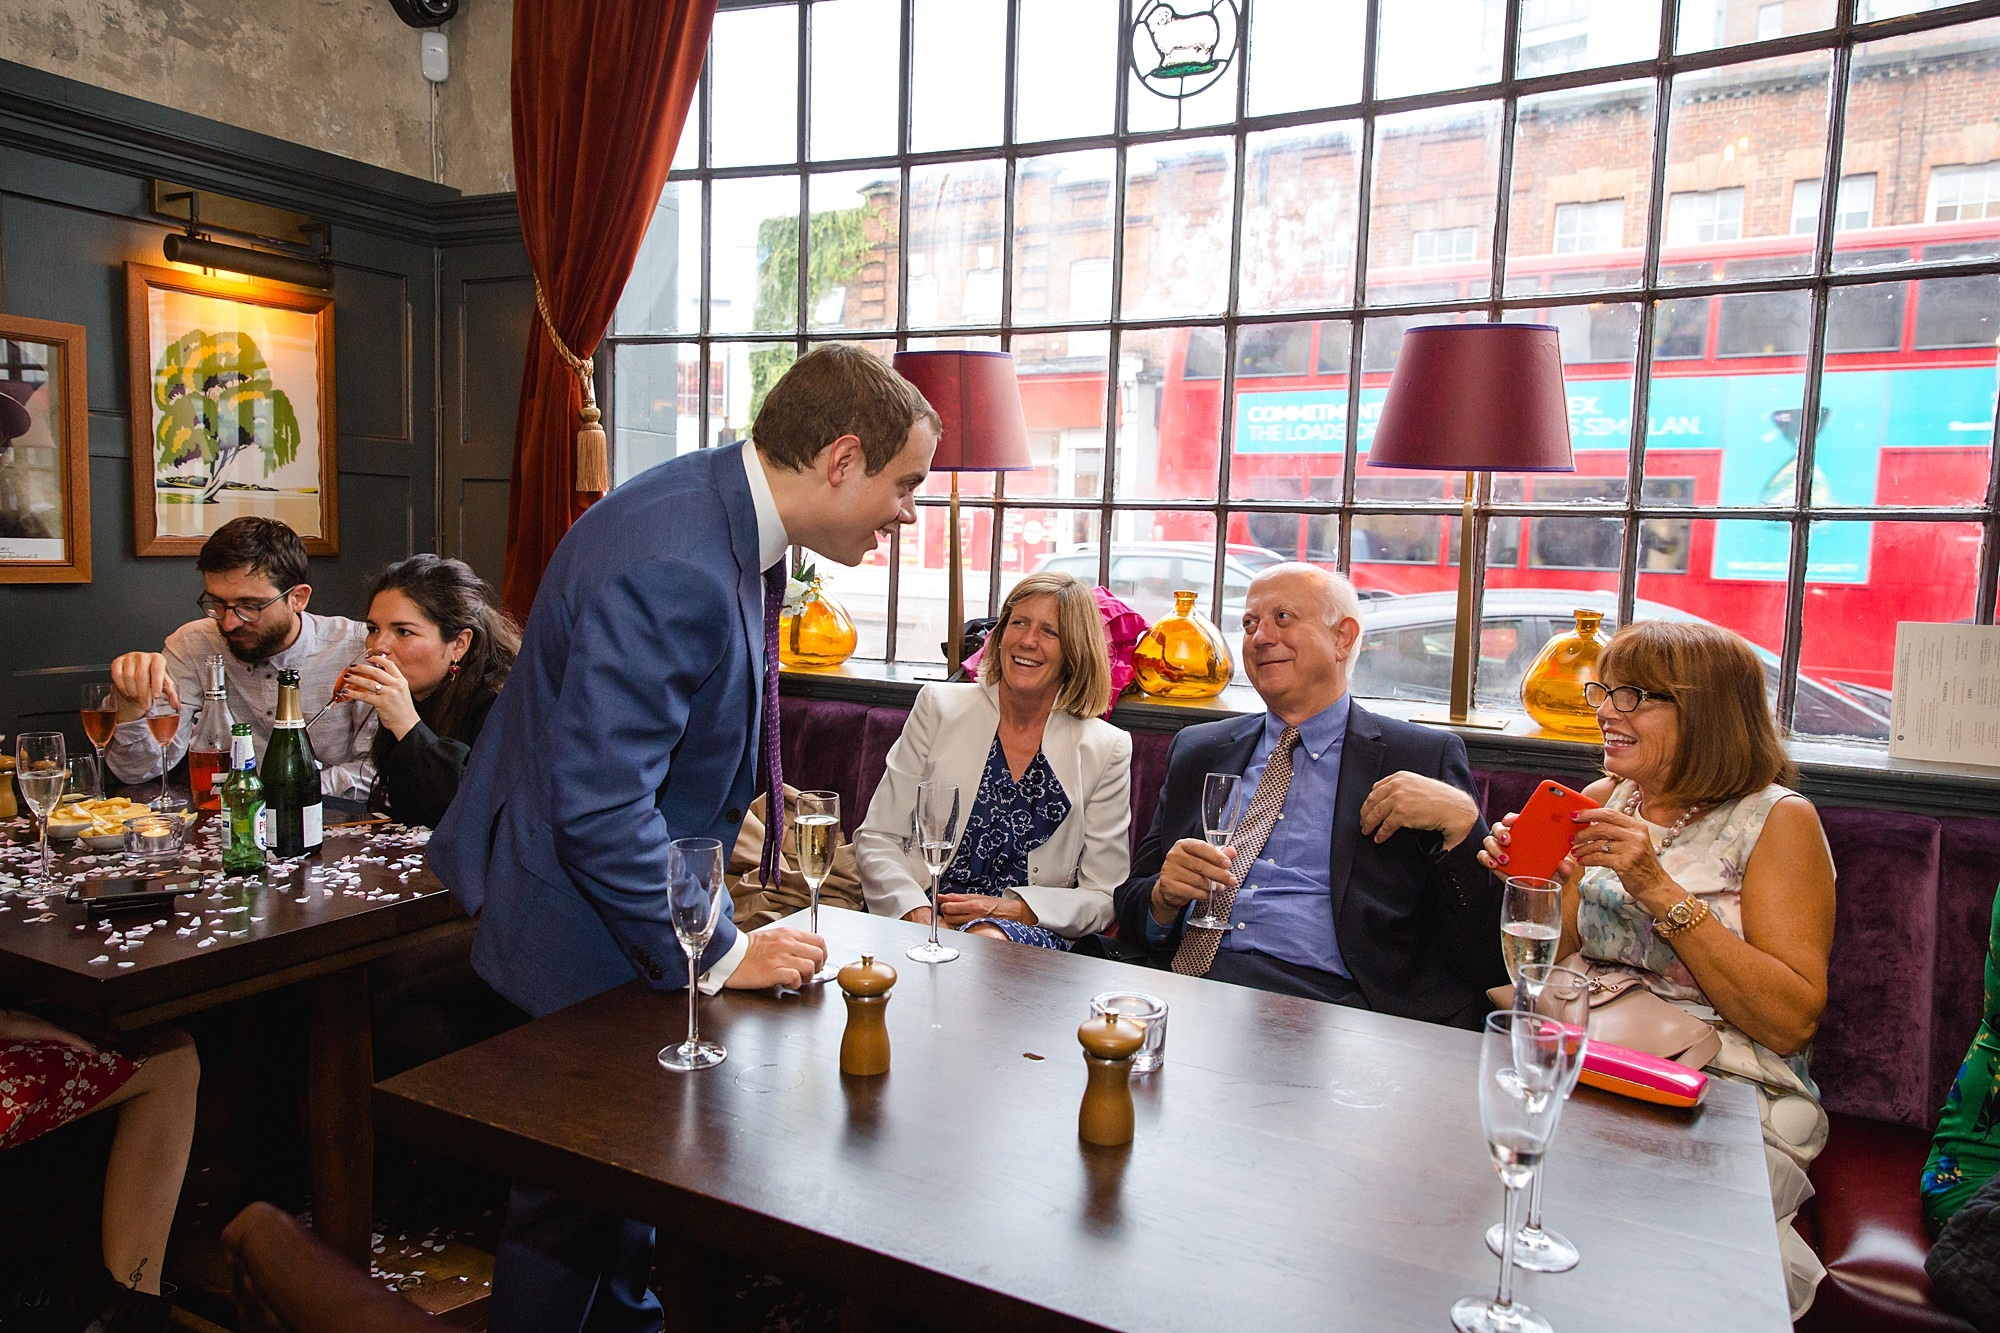 Wandsworth pub wedding groom chats to guests